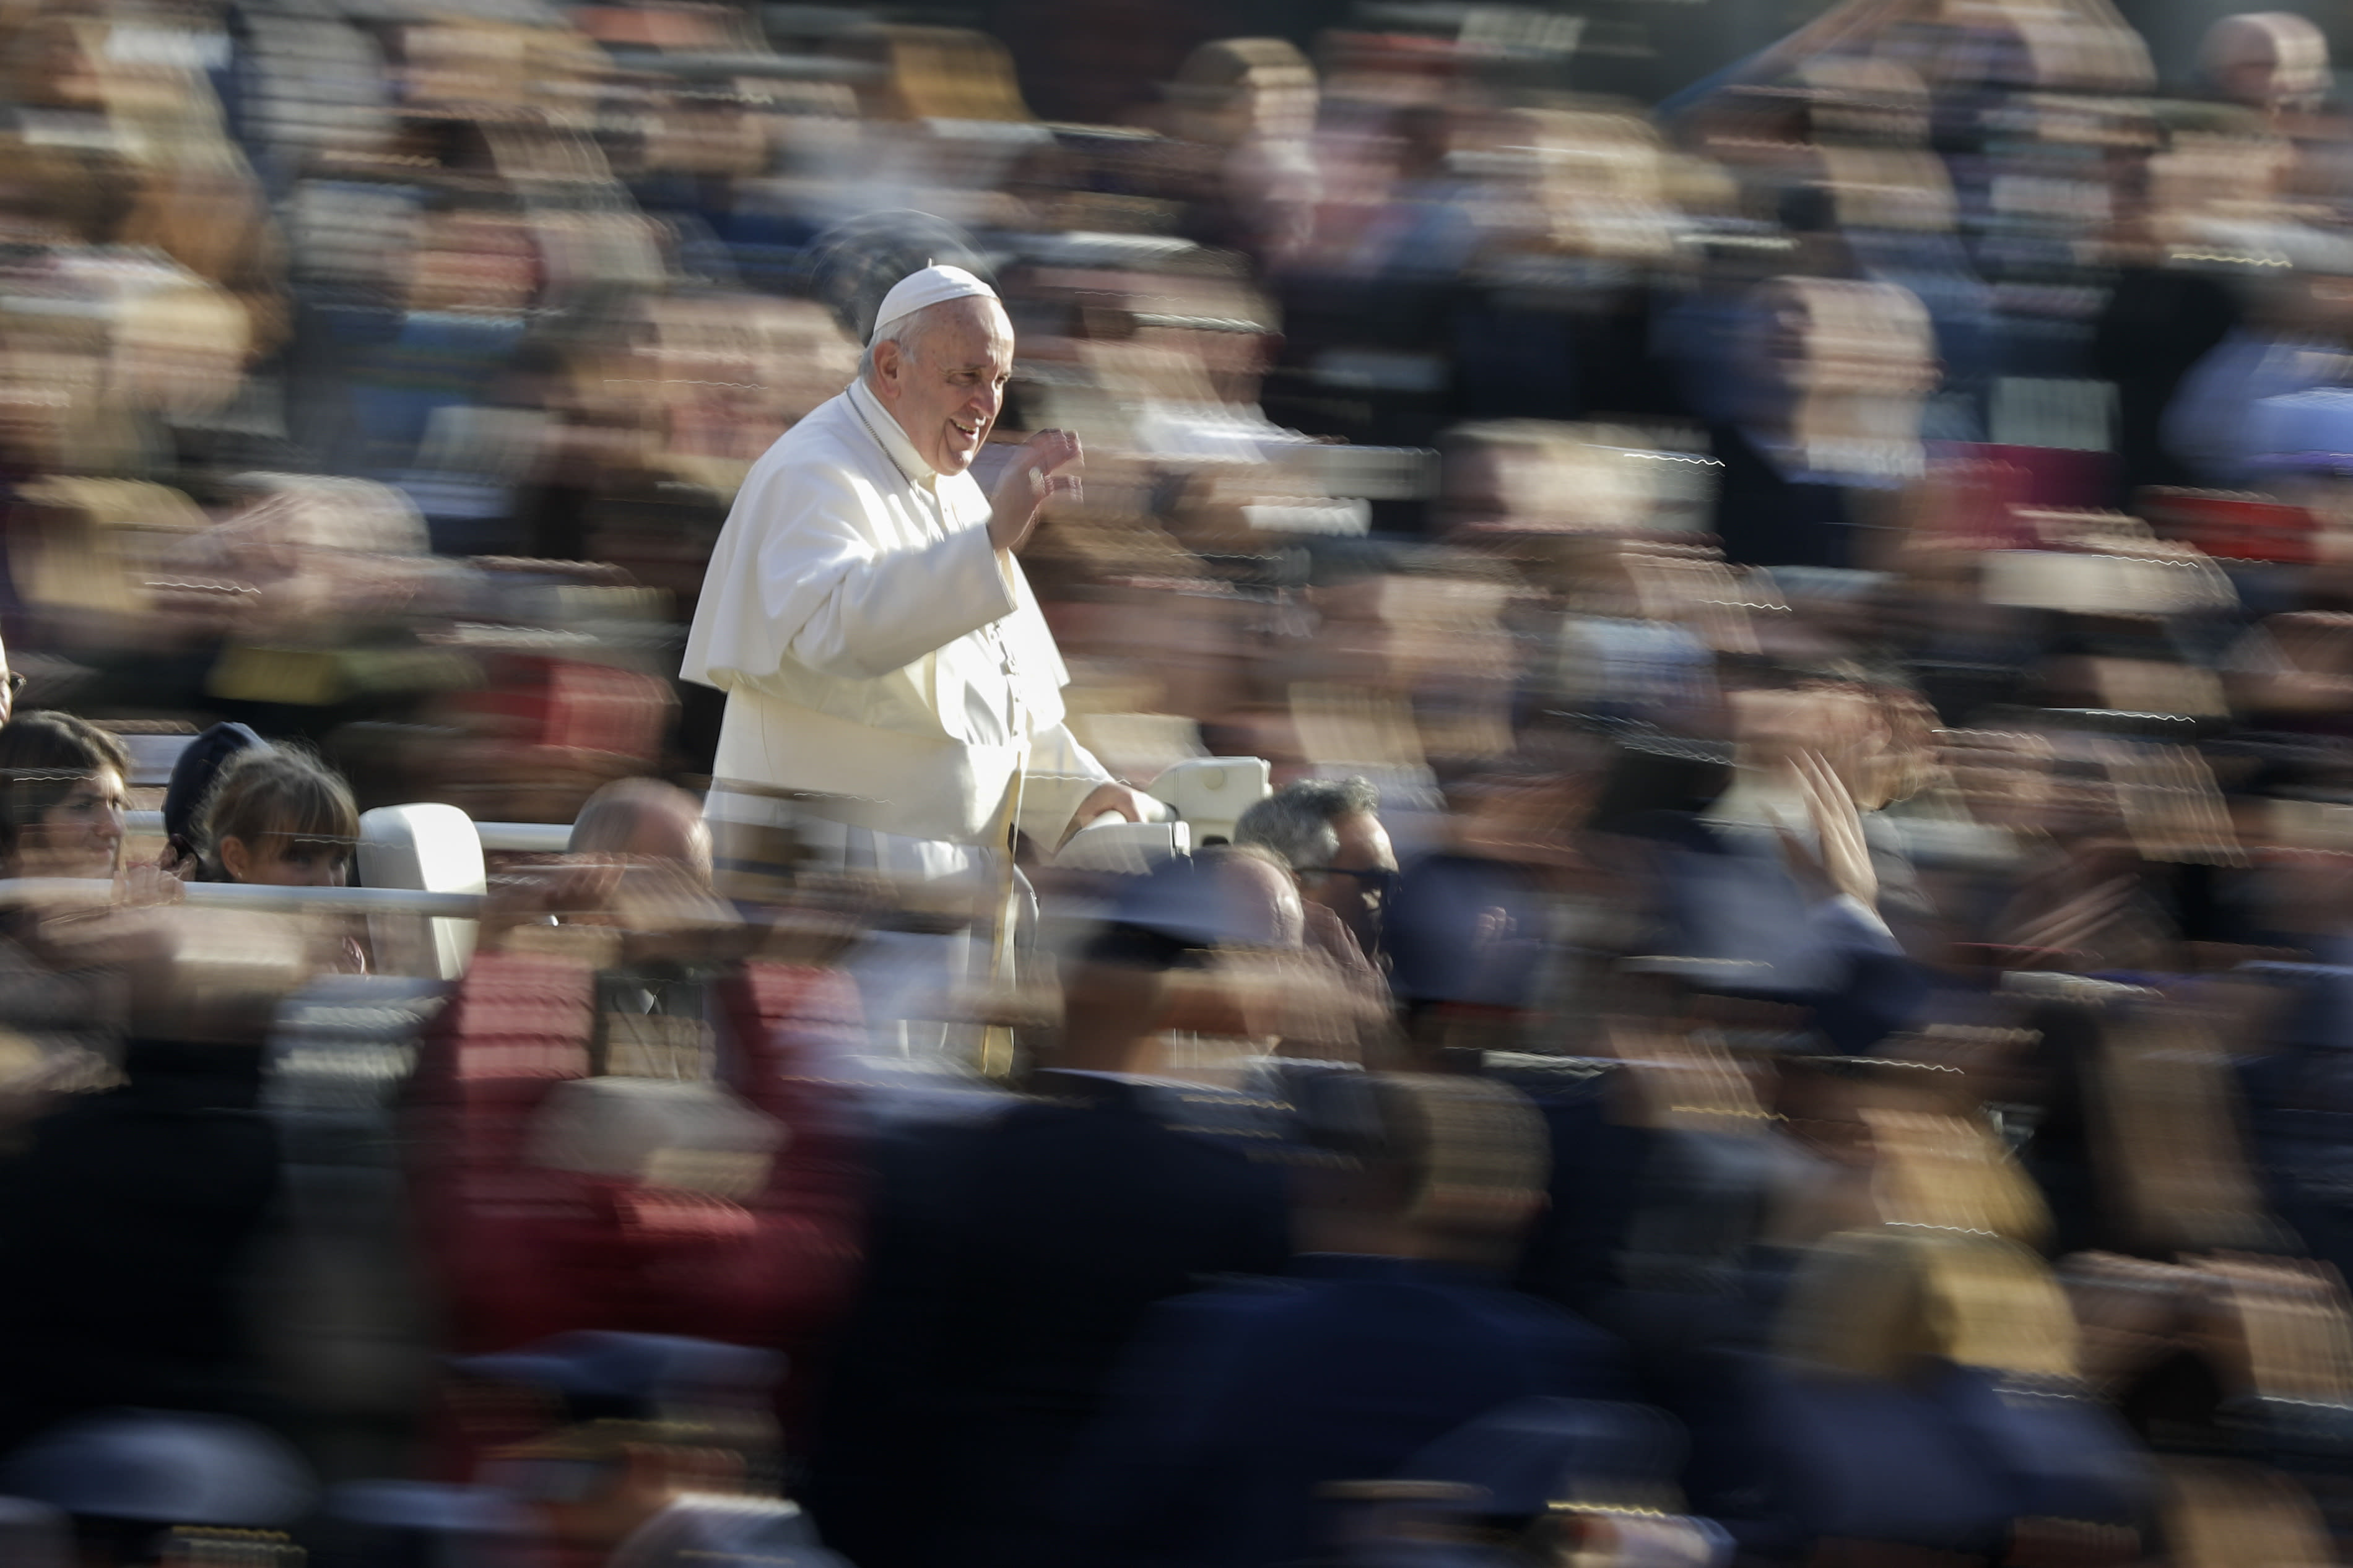 Pope Francis waves to faithful as he arrives for his weekly general audience, in St. Peter's Square, at the Vatican, Wednesday, Nov. 27, 2019. (AP Photo/Andrew Medichini)